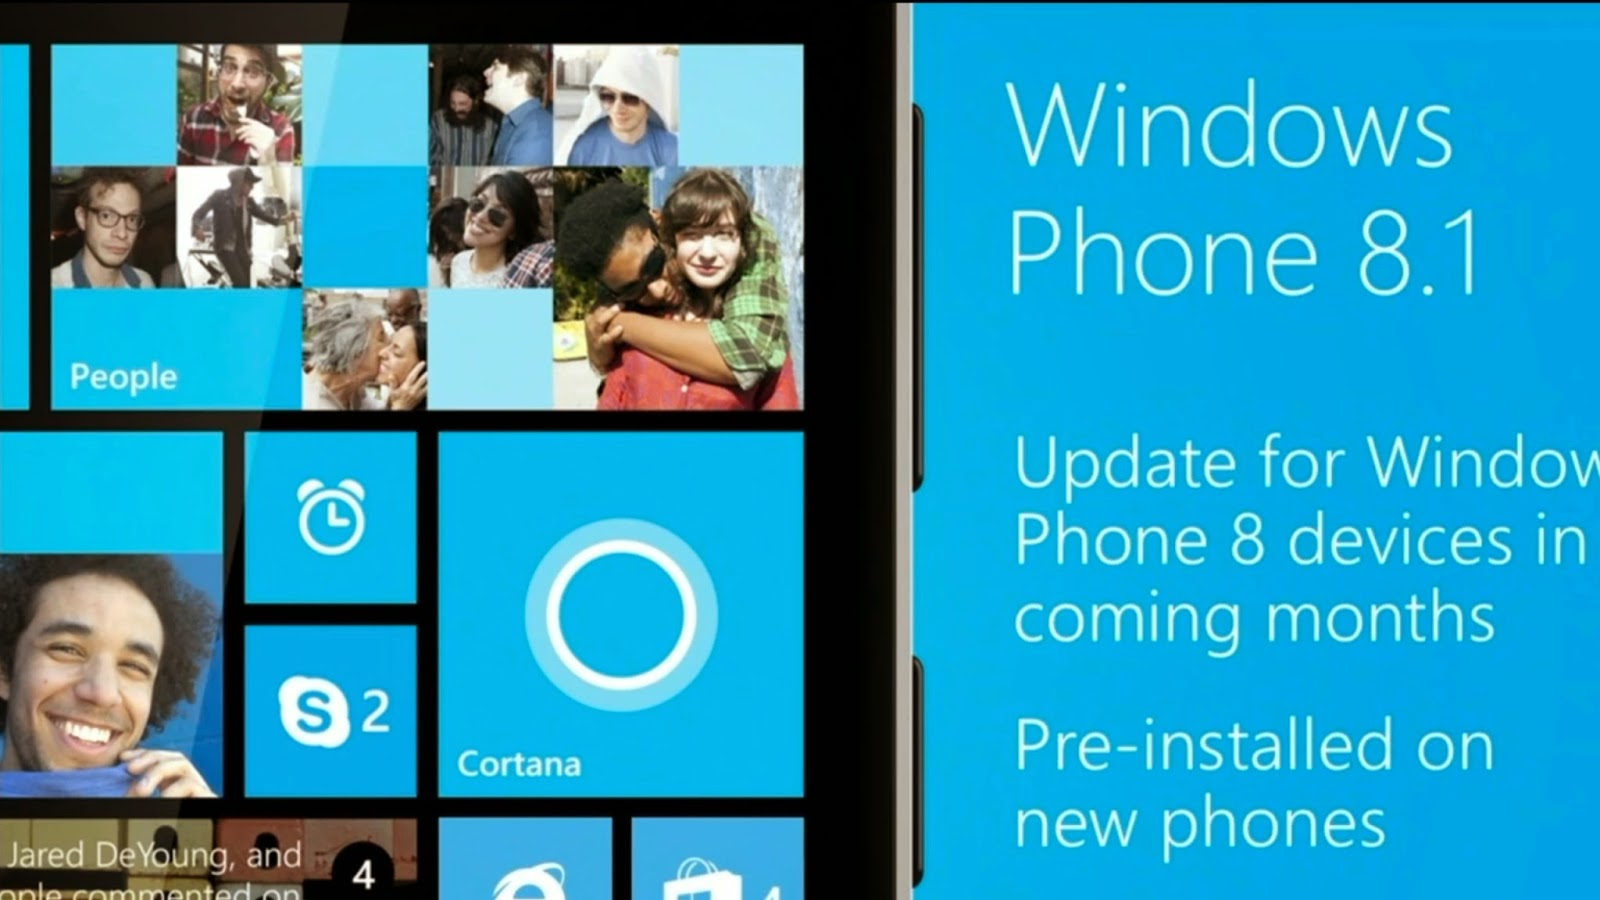 Windows Phone 8.1 final akan segera di rilis untuk update Windows Phone 8 Windows Phone 8.1 final , spesifikasi  Windows Phone 8.1 final , harga  Windows Phone 8.1 final , fitur  Windows Phone 8.1 final ,untuk update Windows Phone 8, Windows Phone, update Windows Phone, cara update Windows Phone, download Windows Phone 8.1 final, cara update Windows Phone 8.1 final, Nokia Windows Phone 8.1 final, Windows Phone 8.1 final nokia